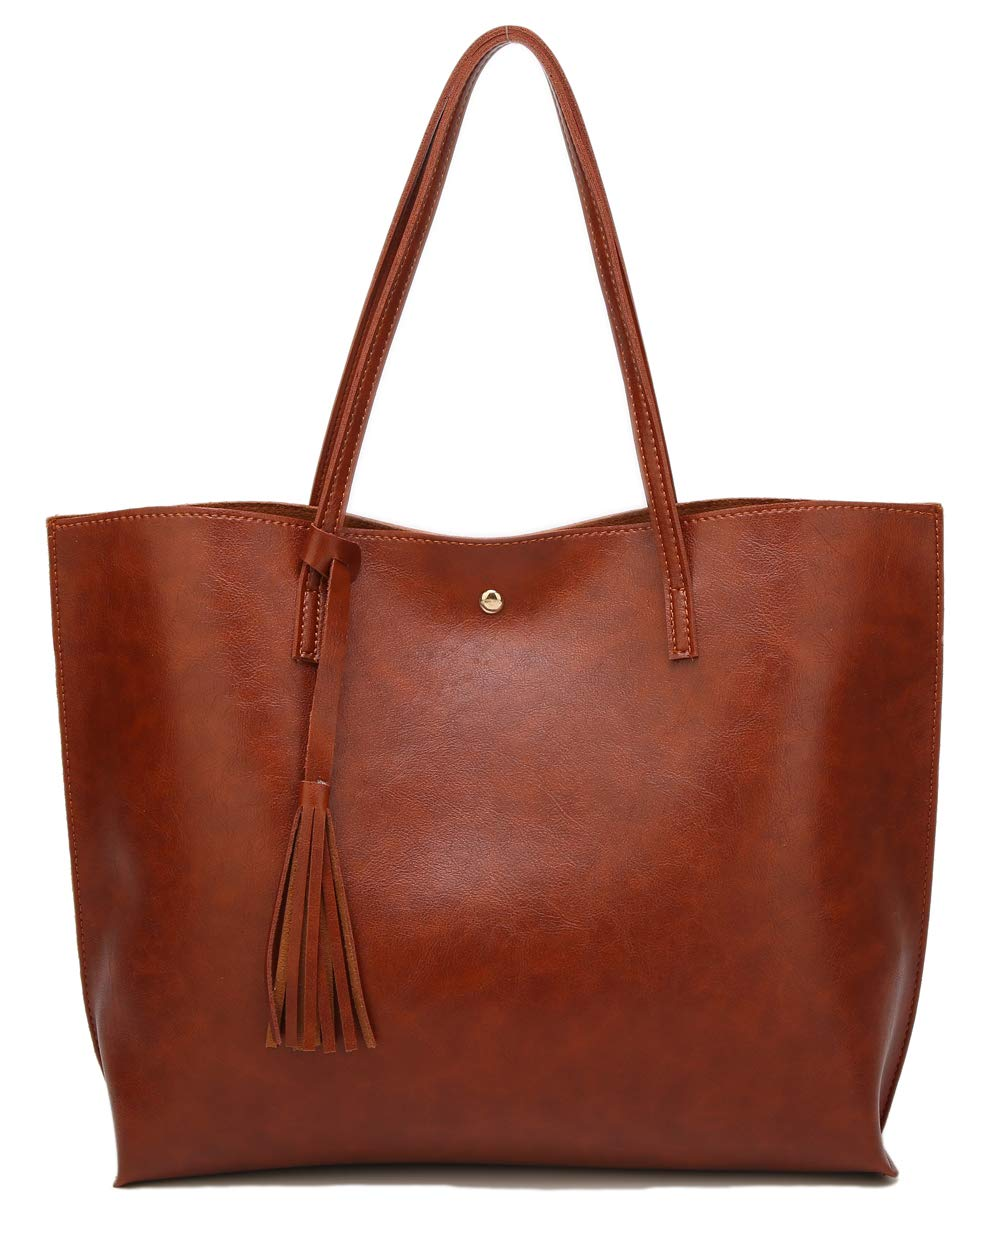 Women's Soft Leather Tote Shoulder Bag from Dreubea, Big Capacity Tassel Handbag Brown (New Style)